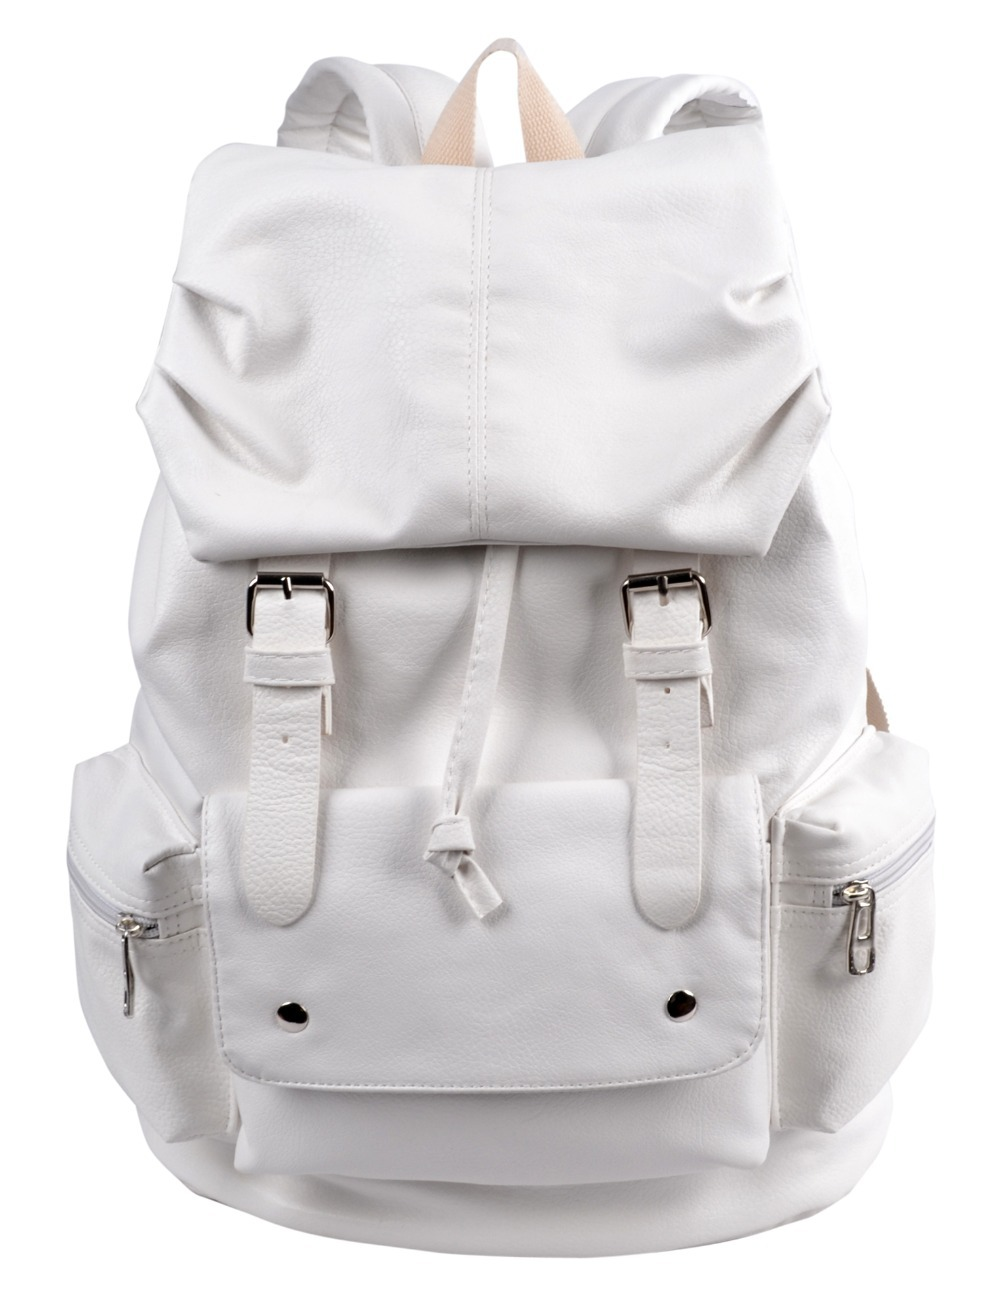 Excellent Mens White Backpack | Cg Backpacks DL34